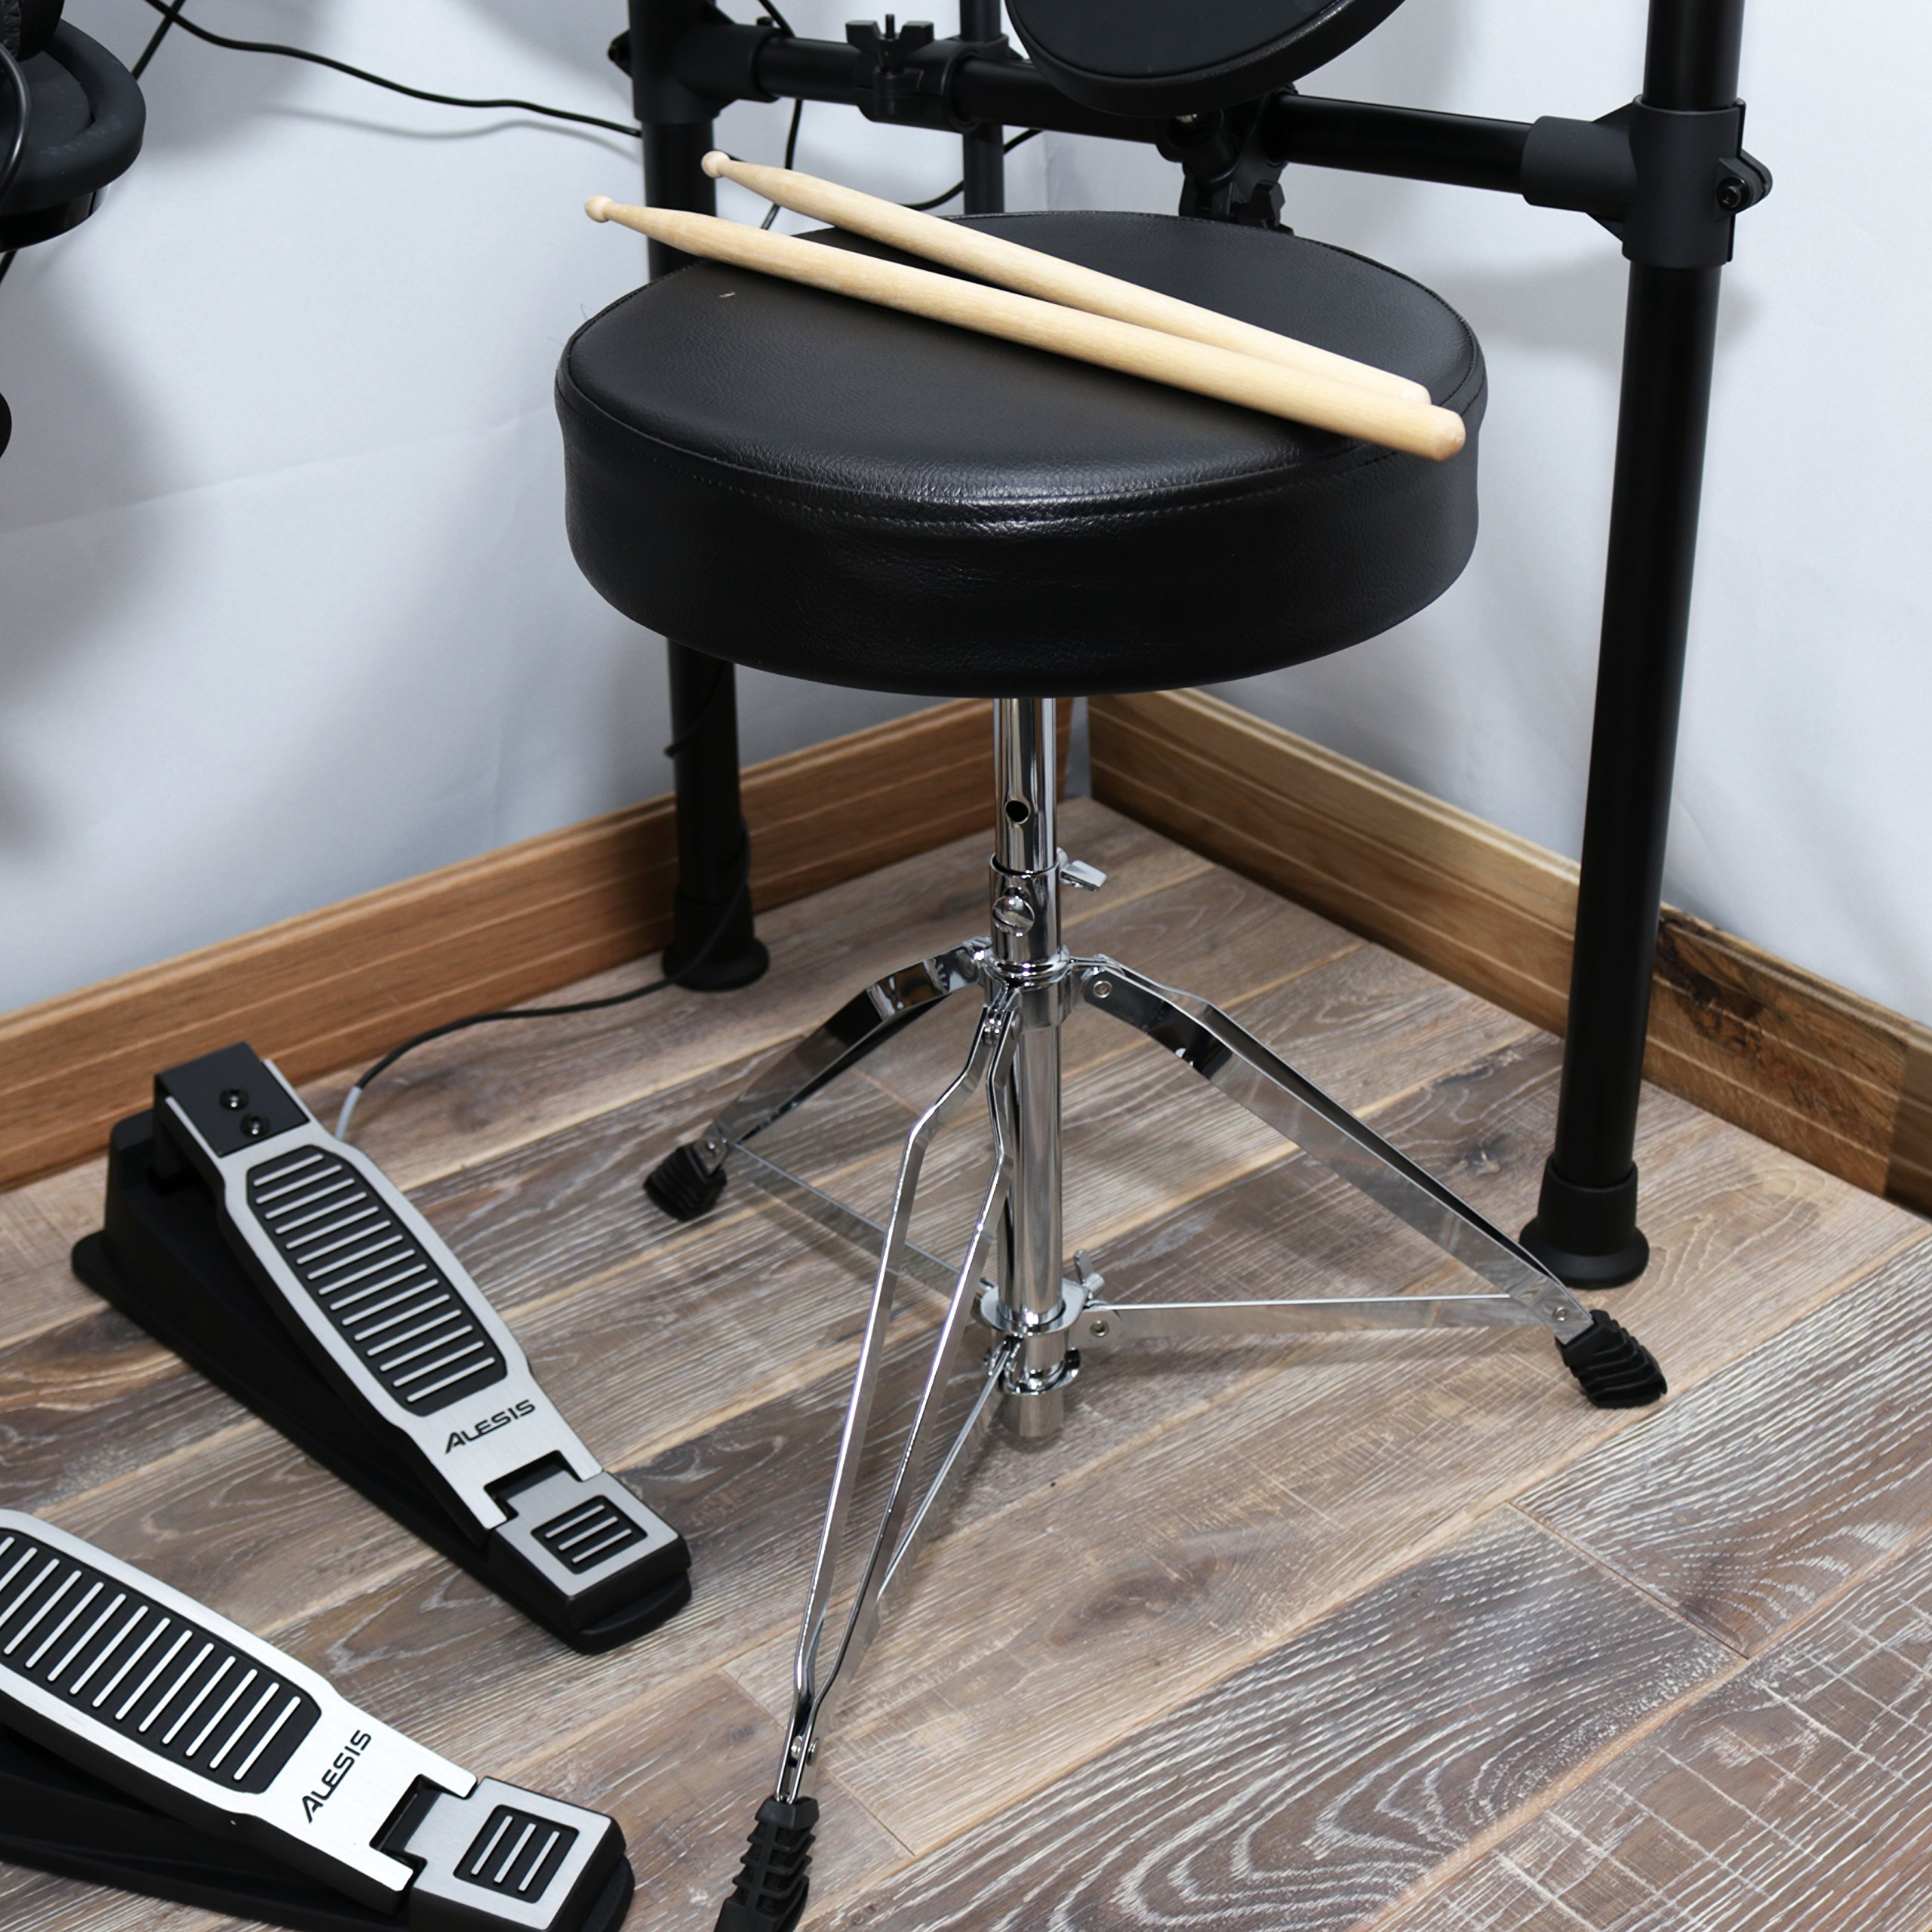 Alesis Seven-Piece Electronic Drum Burst Kit with DM6 Drum Module Includes Drum Throne, Drum Sticks, and FREE Headphones by Alesis